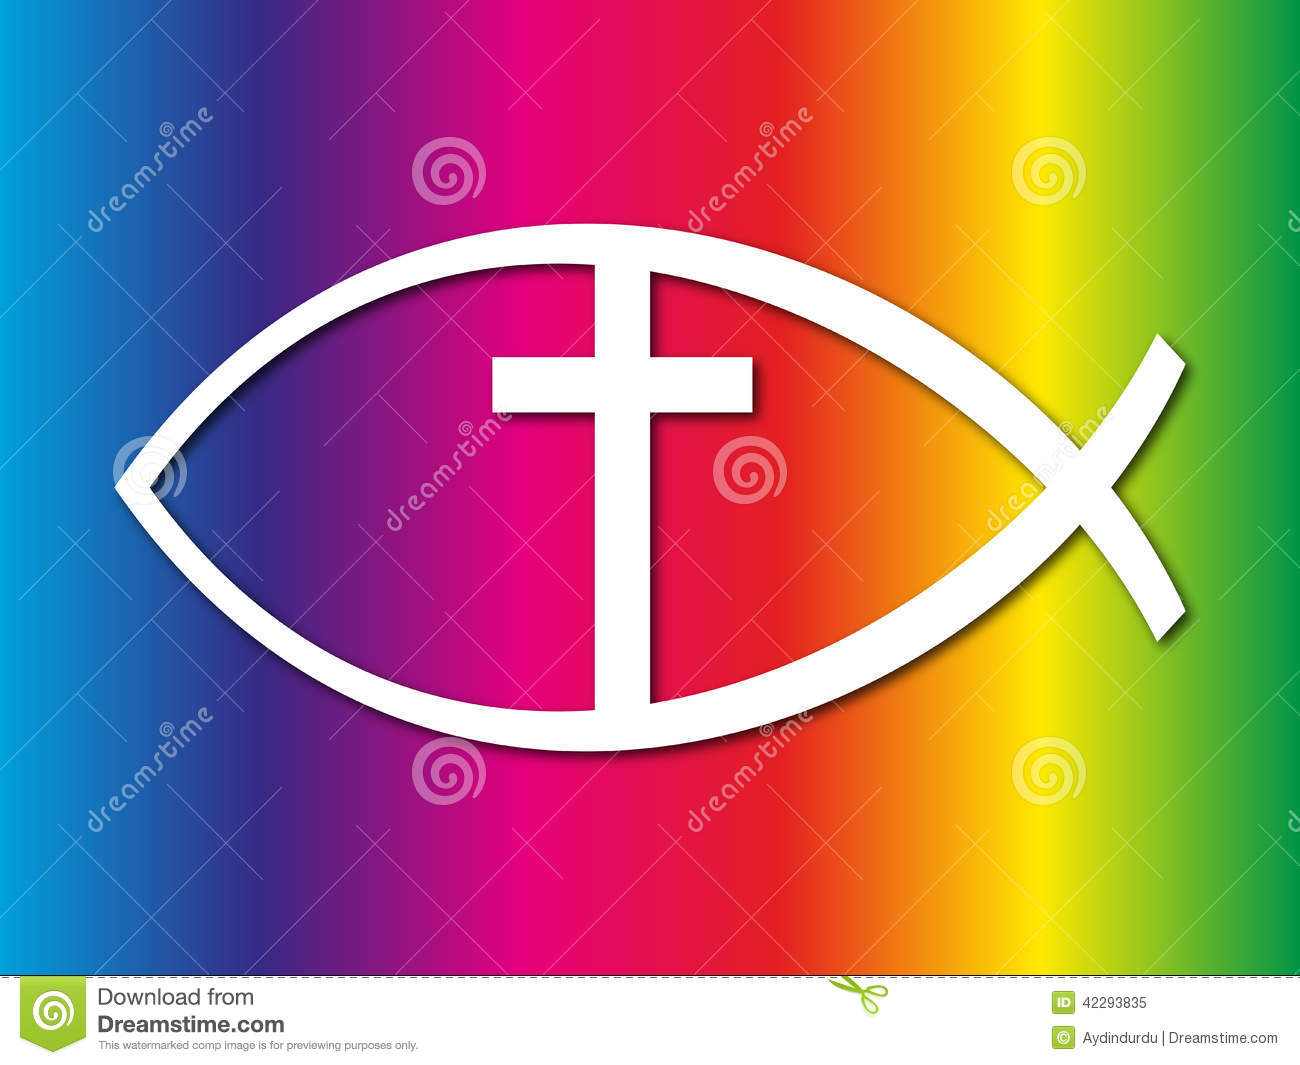 Christian Fish Sign Stock Photo - Image: 42293835